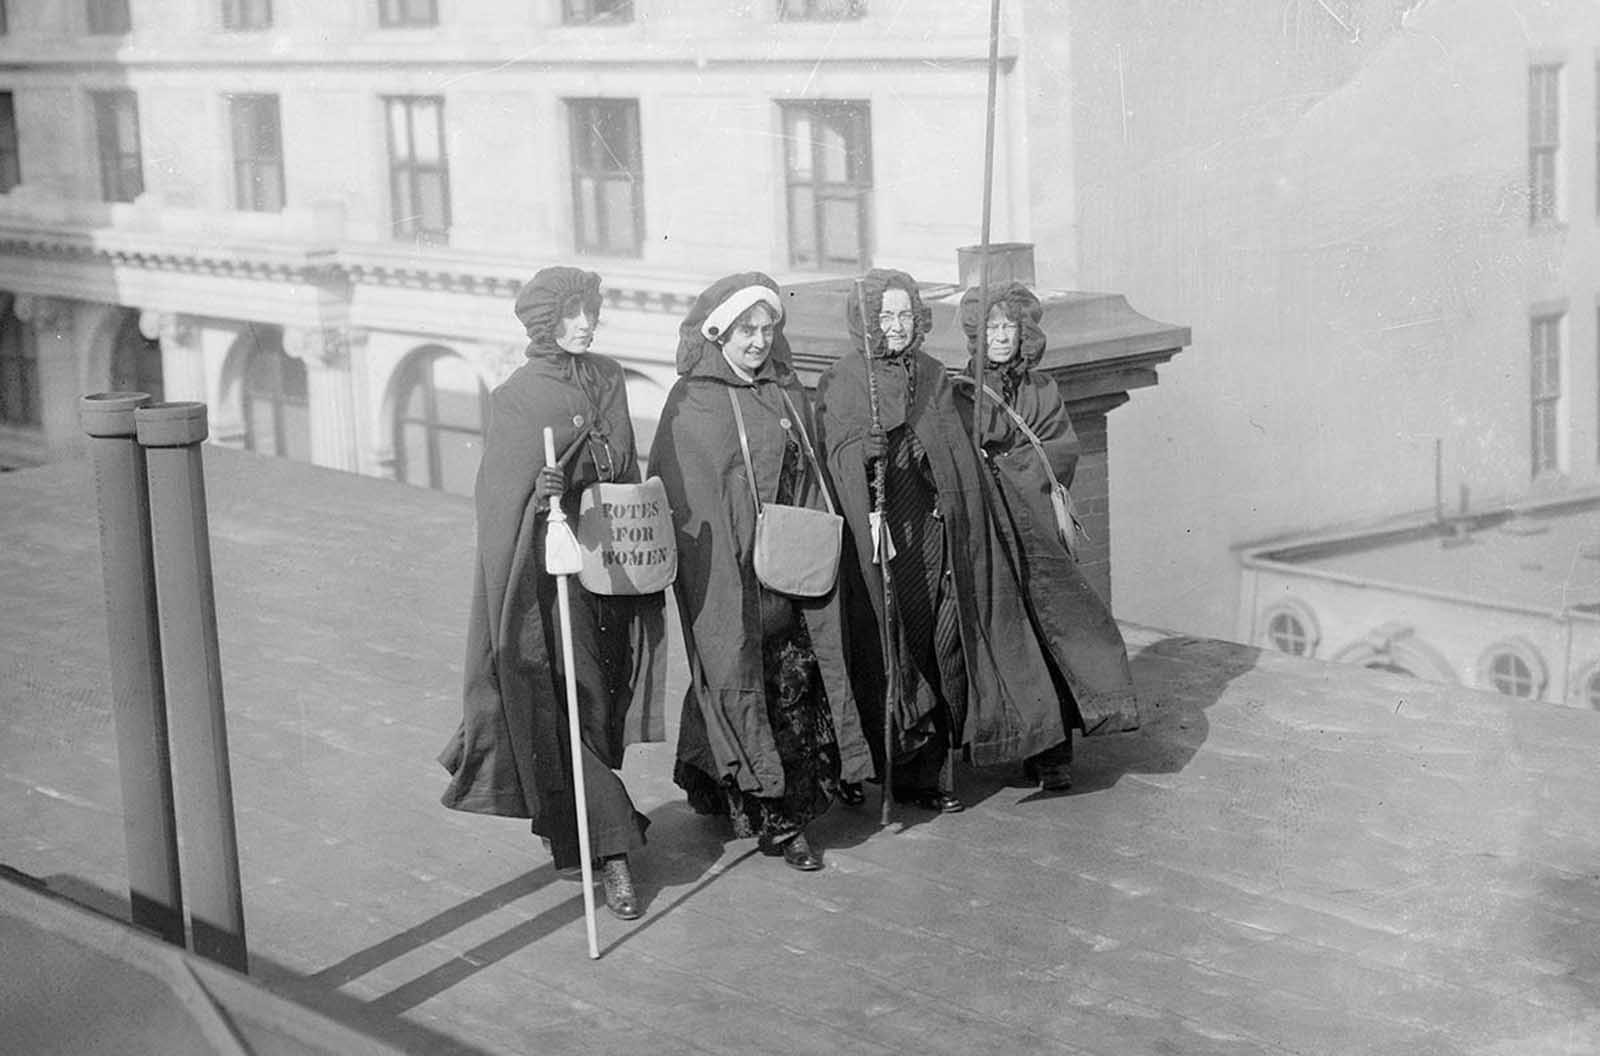 After the Parade: Mrs. John Boldt, Mrs. May Morgan, Miss Dock, and Miss Craft, suffrage hikers who took part in the suffrage hike from New York City to Washington, District of Columbia, as well as the parade itself, on March 3, 1913.